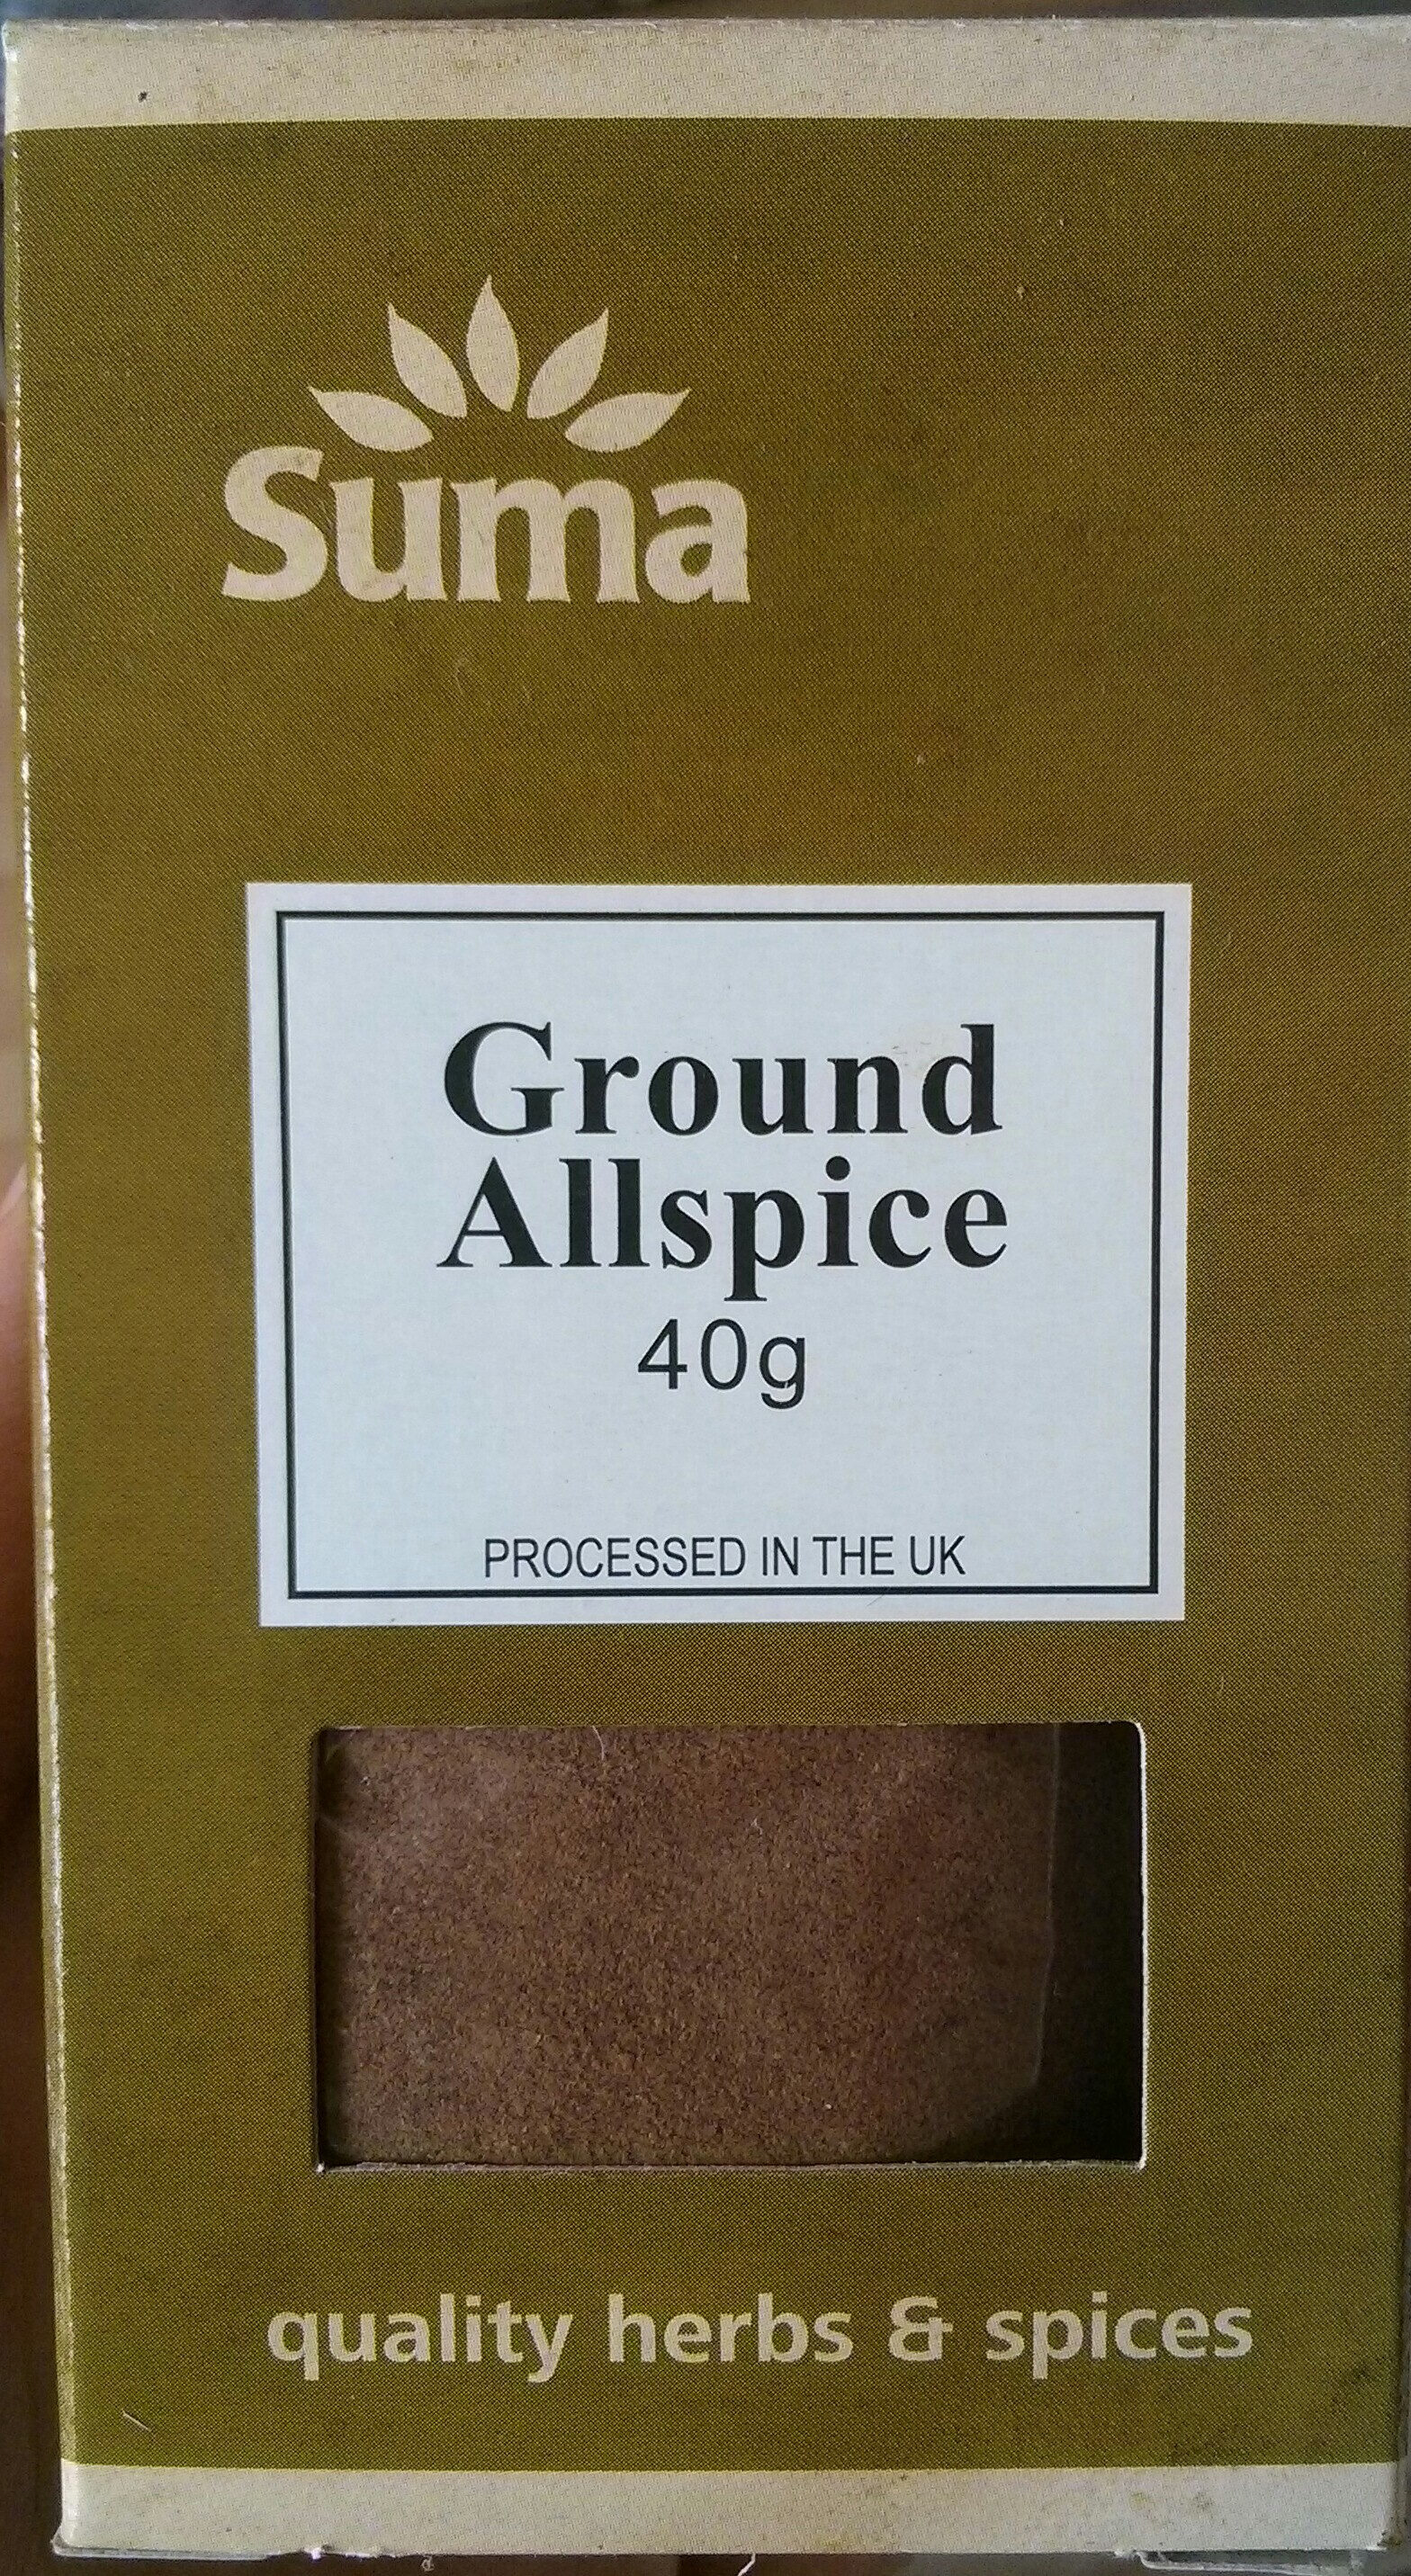 Ground Allspice - Product - en